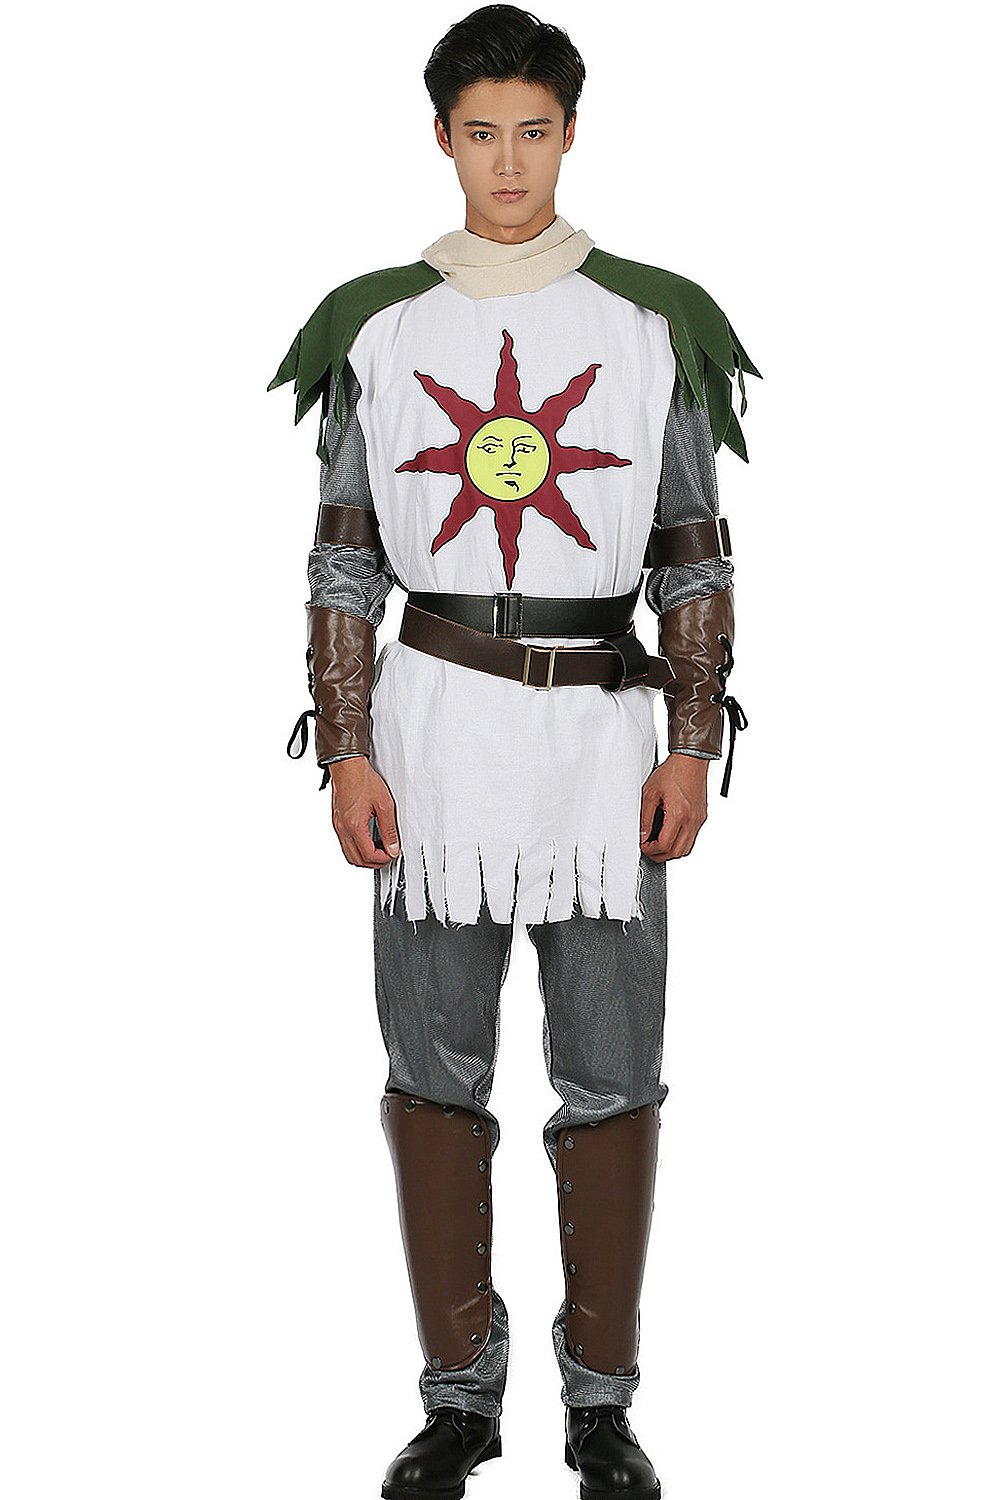 Solaire Costume Sun Warrior Outfit for Halloween Cosplay L